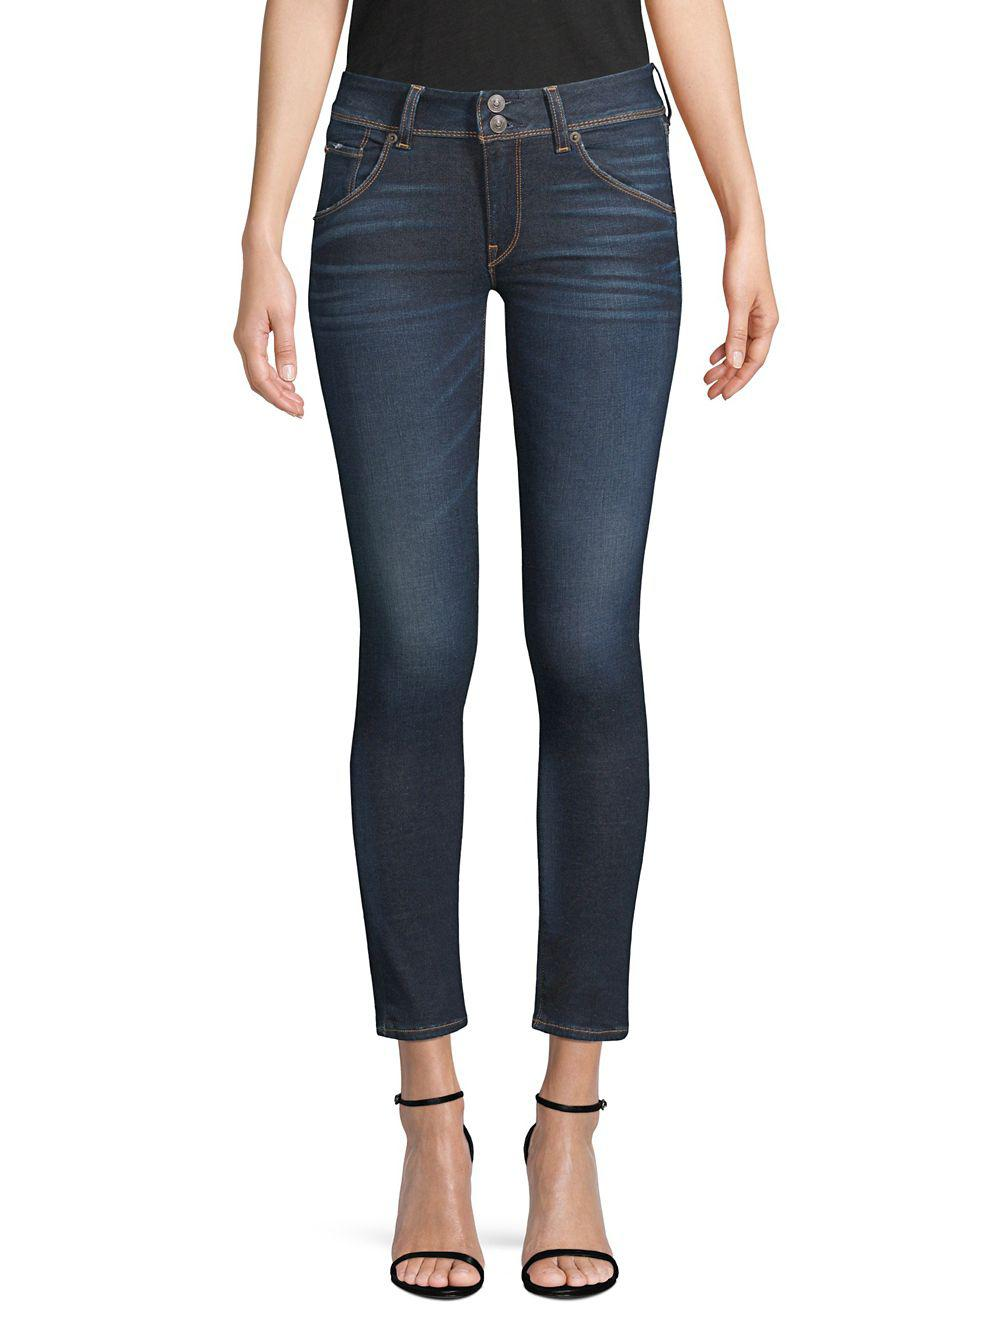 9a2a5c7445c Hudson Jeans Collin Skinny Jeans in Blue - Lyst